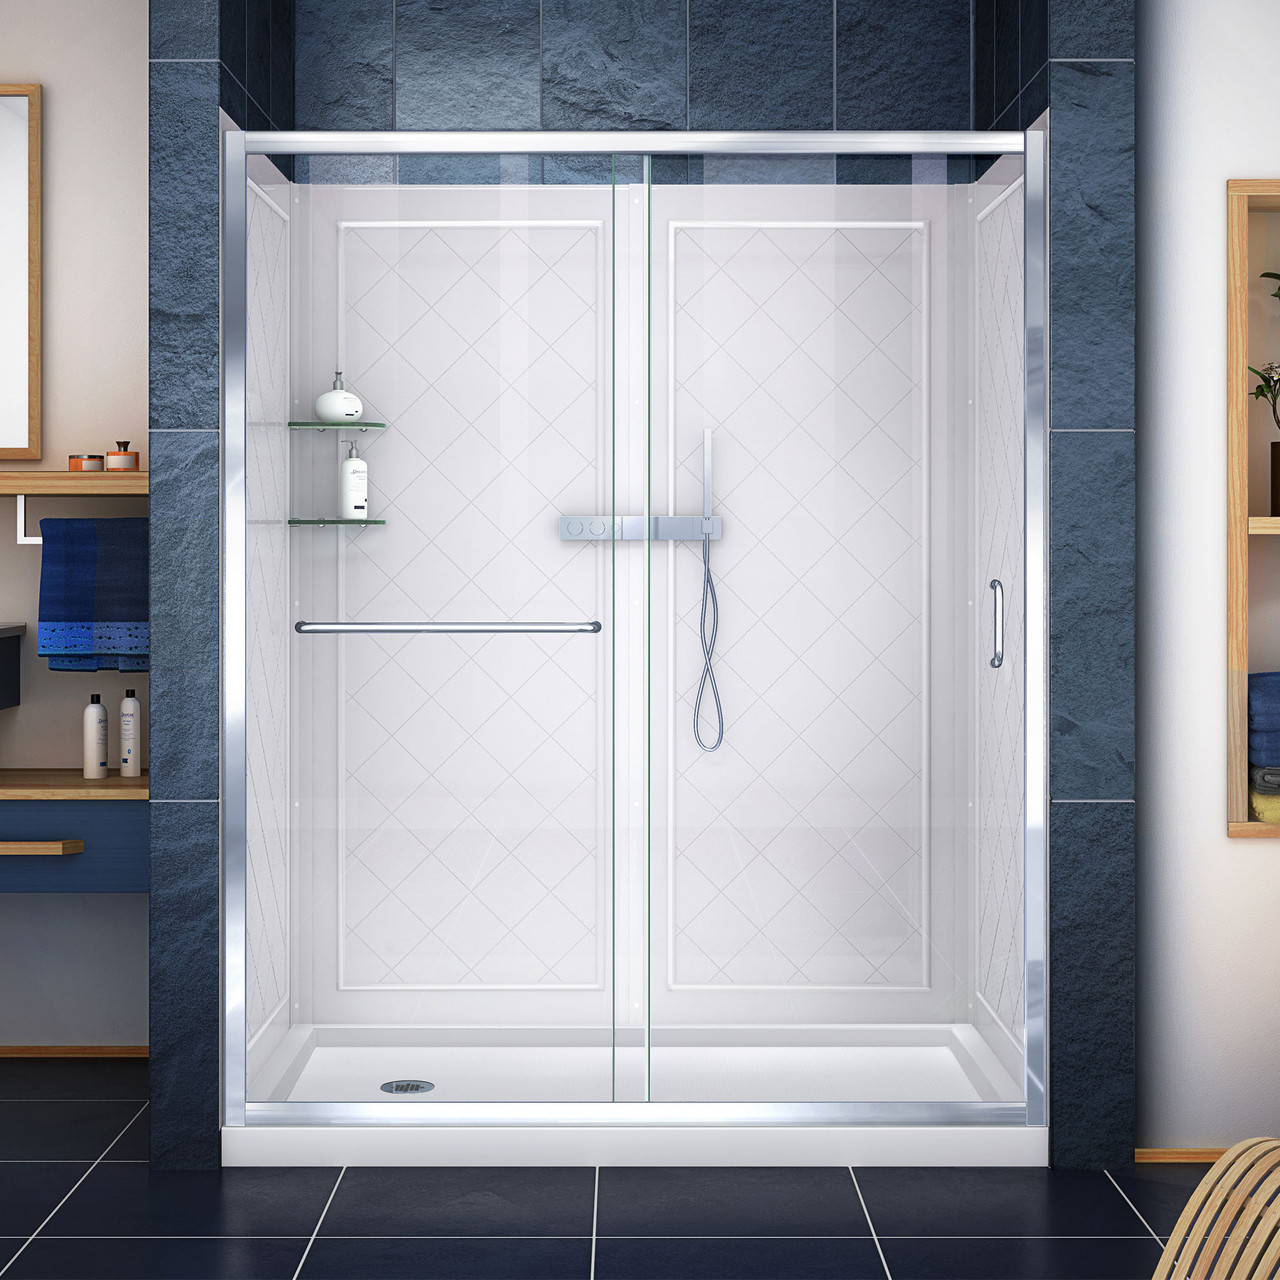 Dreamline Infinity Z 30 In D X 60 In W X 76 3 4 In H Semi Frameless Sliding Shower Door Shower Base And Qwall 5 Backwall Kit Clear Glass